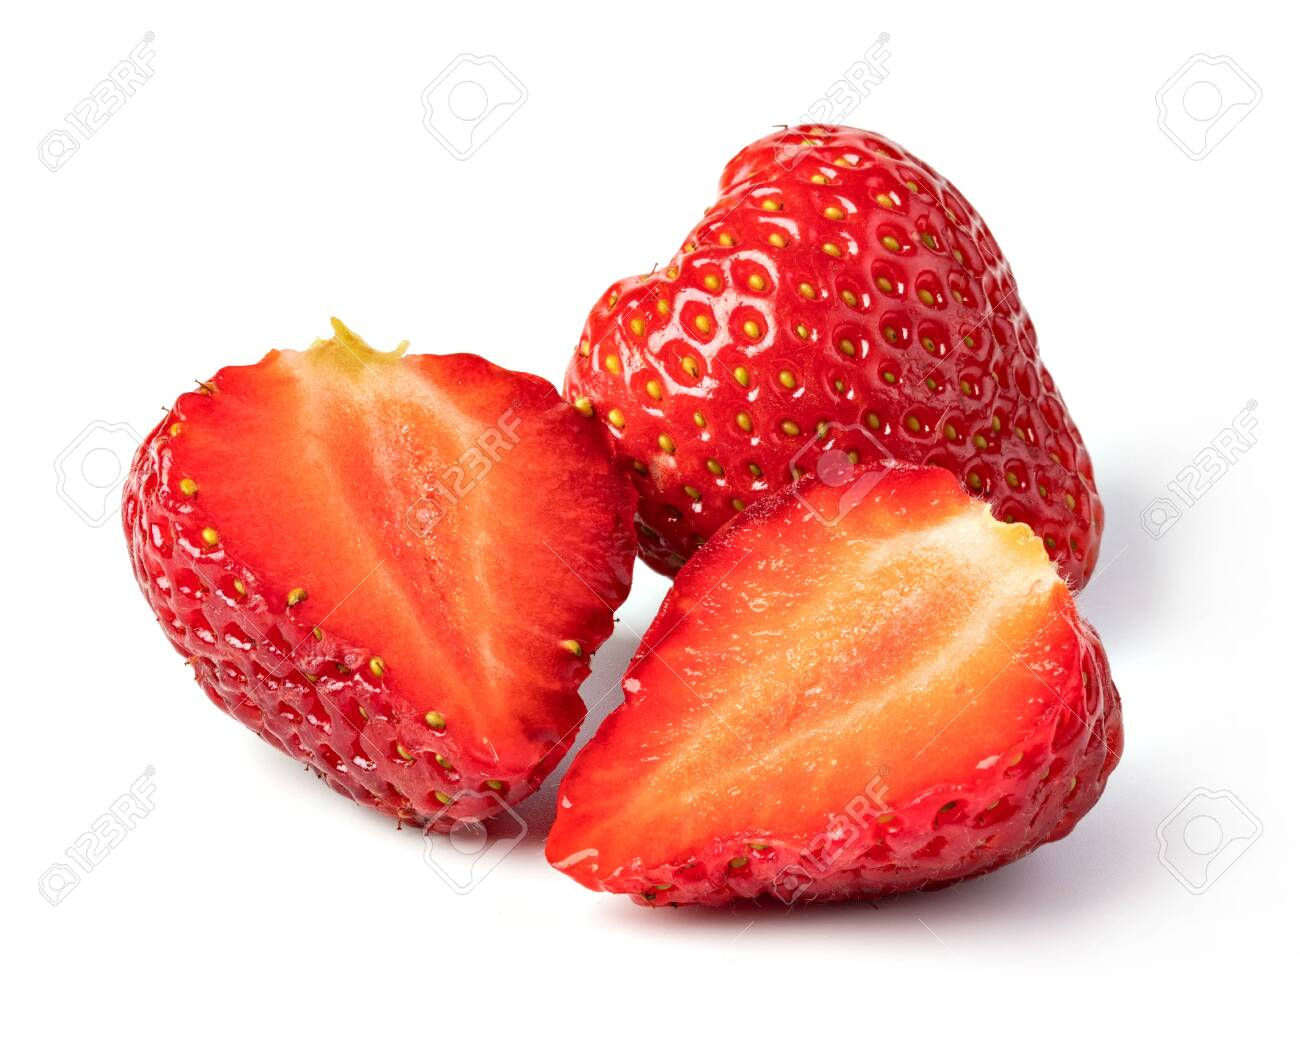 Strawberry isolated on a white background - 131534889